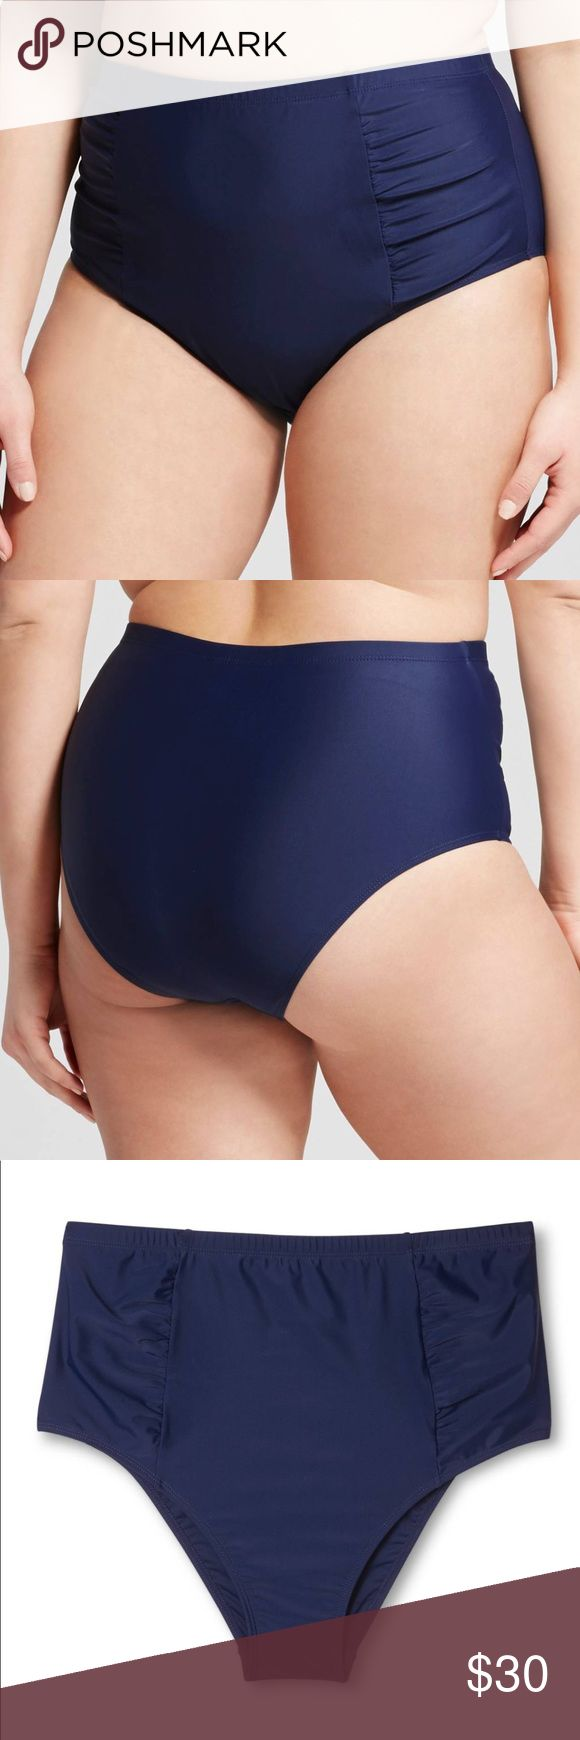 New blue swim bottom in 2X • Nylon/Spandex for reliable stretch • Fully lined for comfort and modesty • High waist is flattering and provides more coverage • Ruched sides create a slimming front panel  Dive into the season in the Women's Plus Size Solid Retro High Waist Bikini Bottoms in Navy by Costa del Sol. The neutral charm of this plus size swimwear makes it a versatile delight. Swim Bottom Style: bikini Garment Details: Full lining Material: 82% Nylon, 18% Spandex. New without tags…